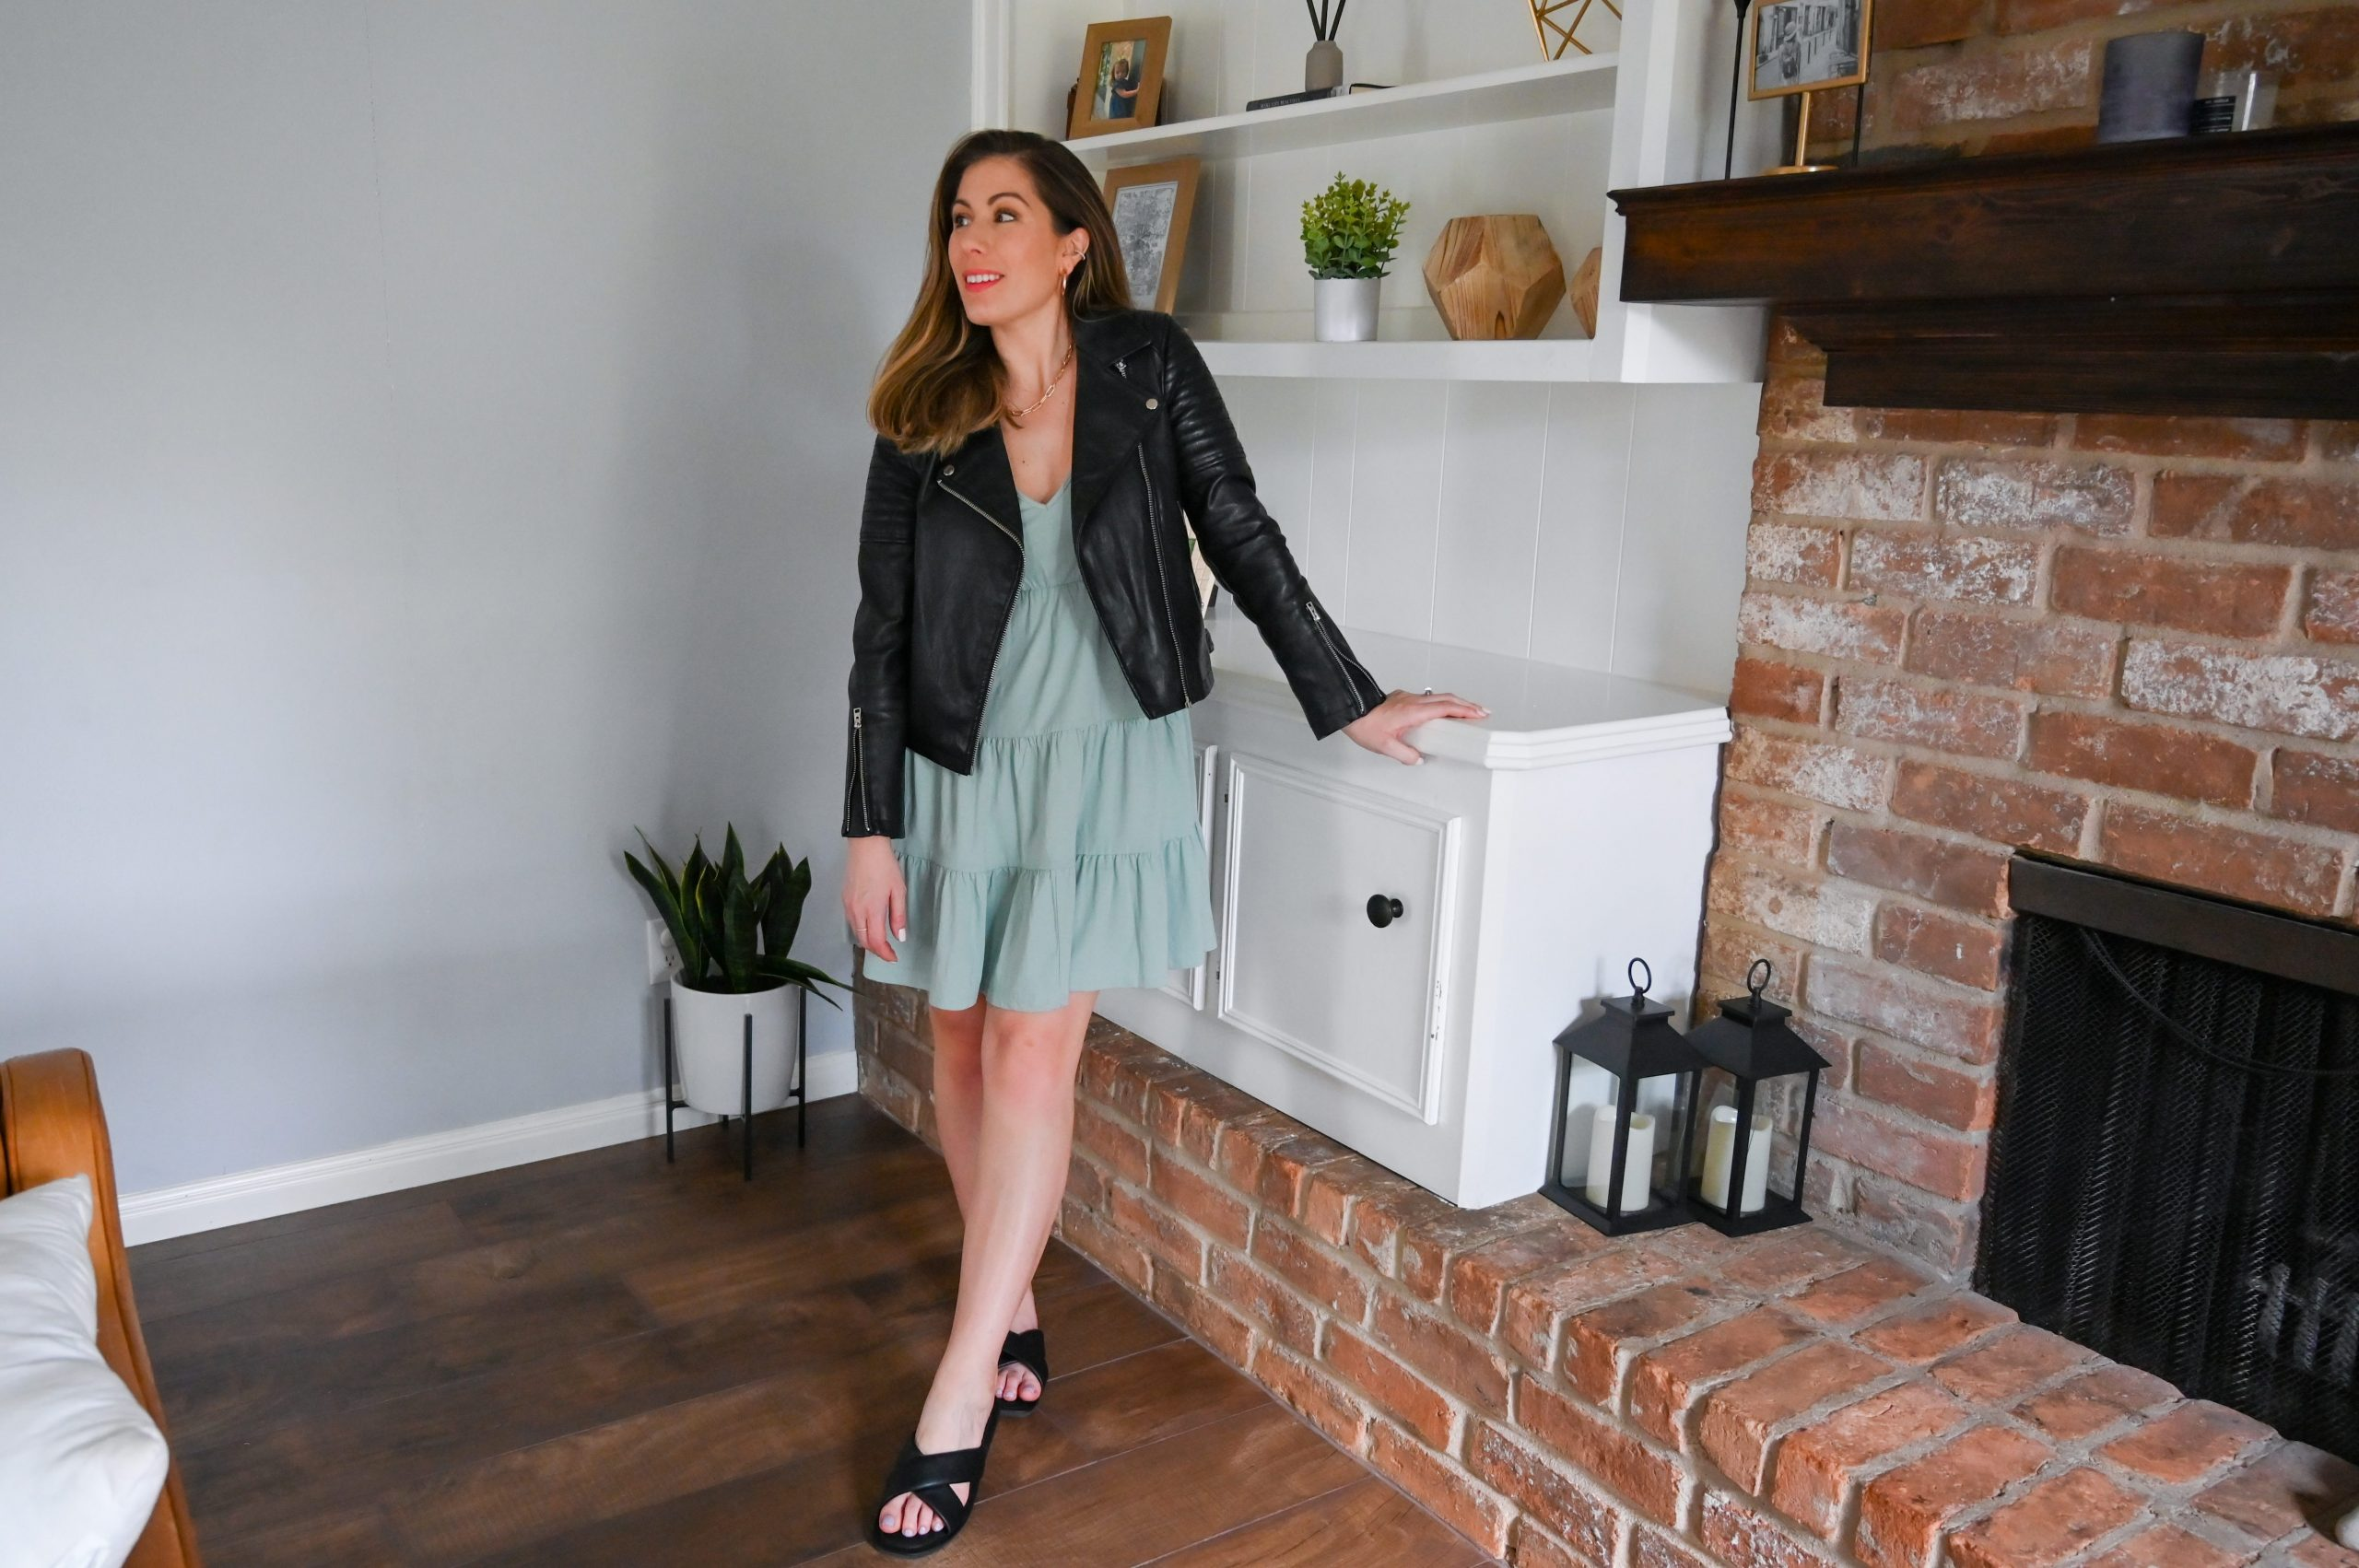 Houston stylist Maria Munoz shares some trends for the spring 2021